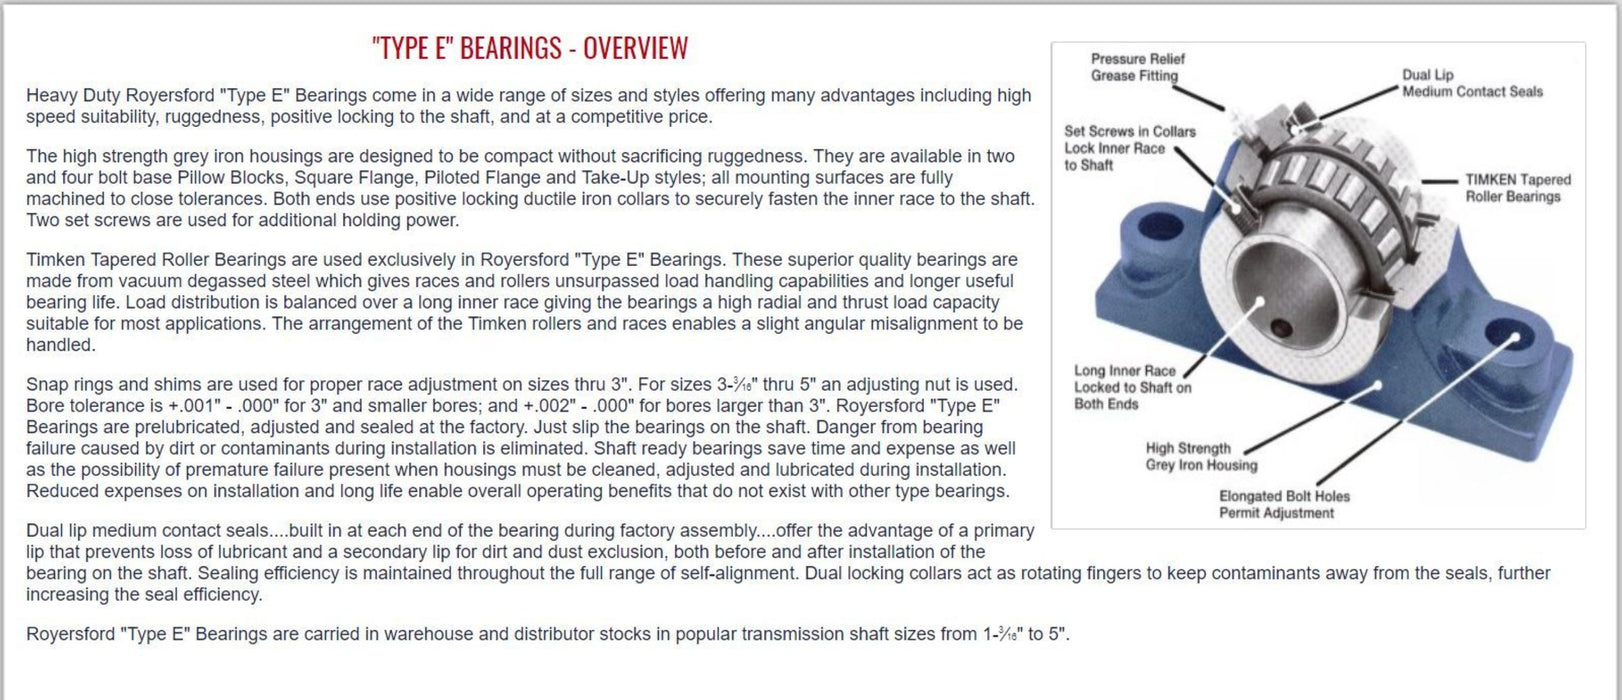 20-04-0308, ROYERSFORD TYPE E 4-Bolt Pillow Block Bearing, 3-1/2 with Timken Tapered Roller Bearings